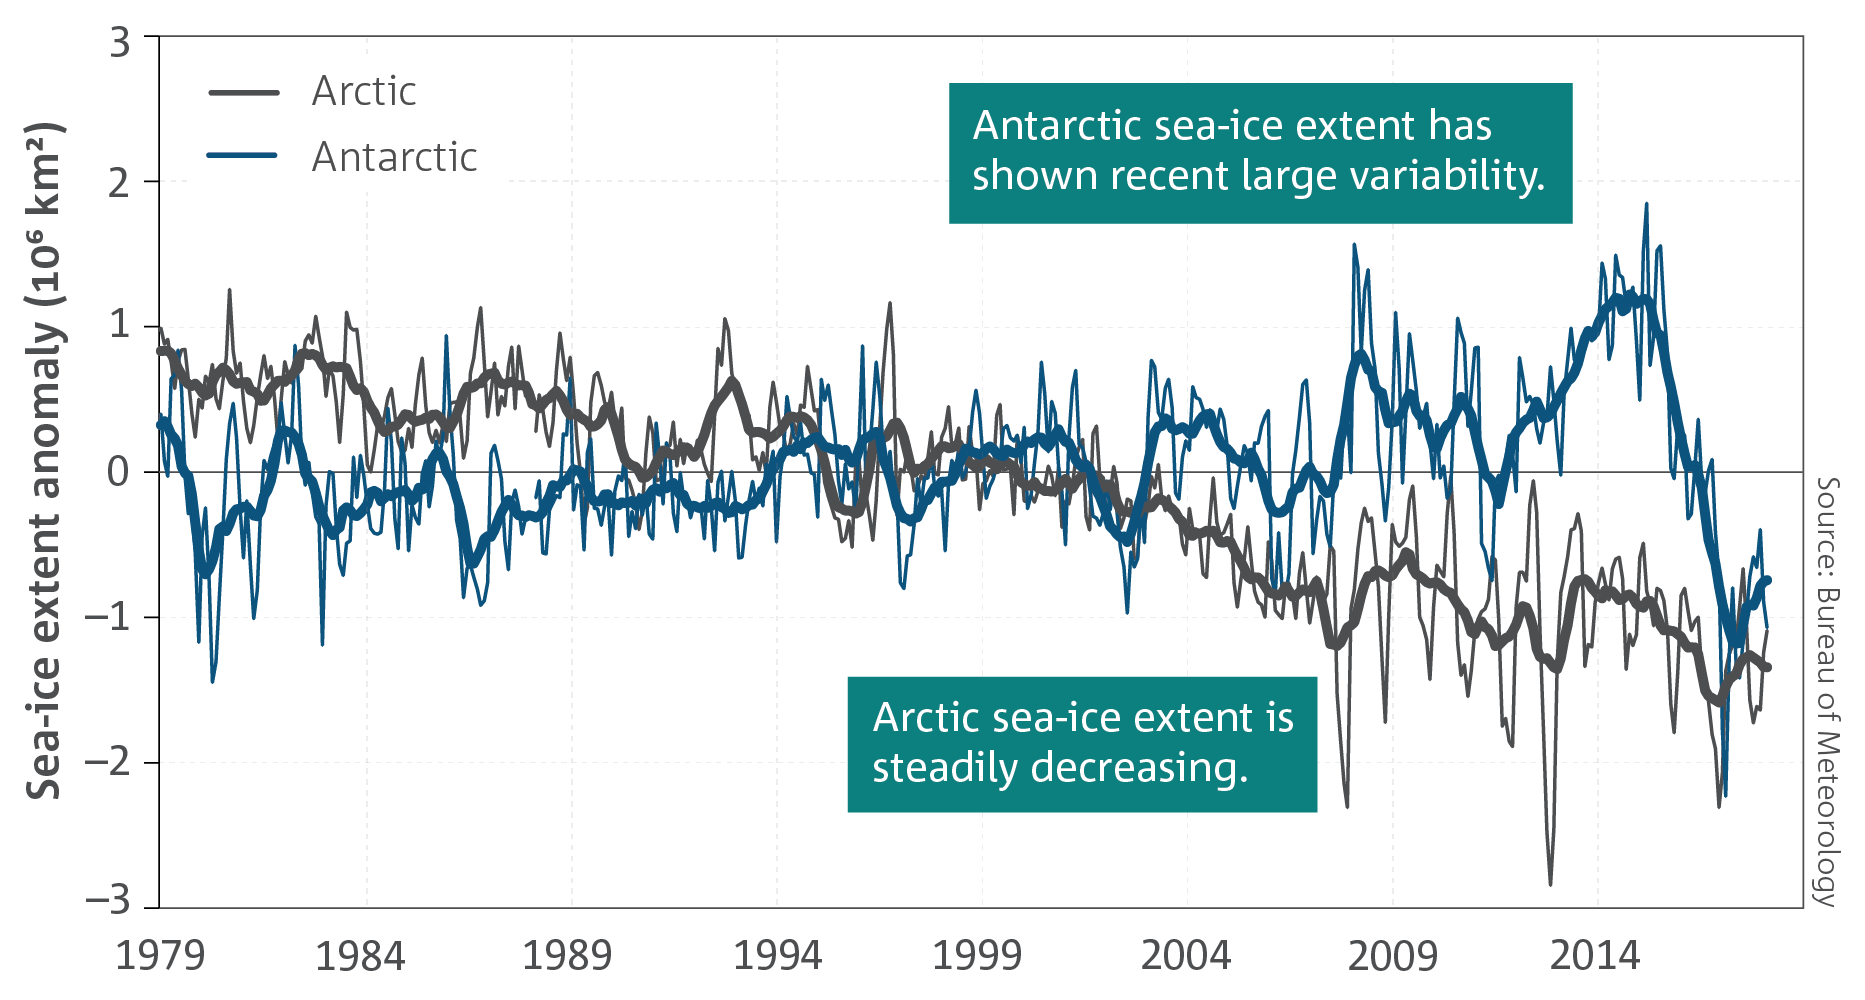 A graph showing Antarctic and Arctic sea-ice extent for the period January 1979 to May 2018.